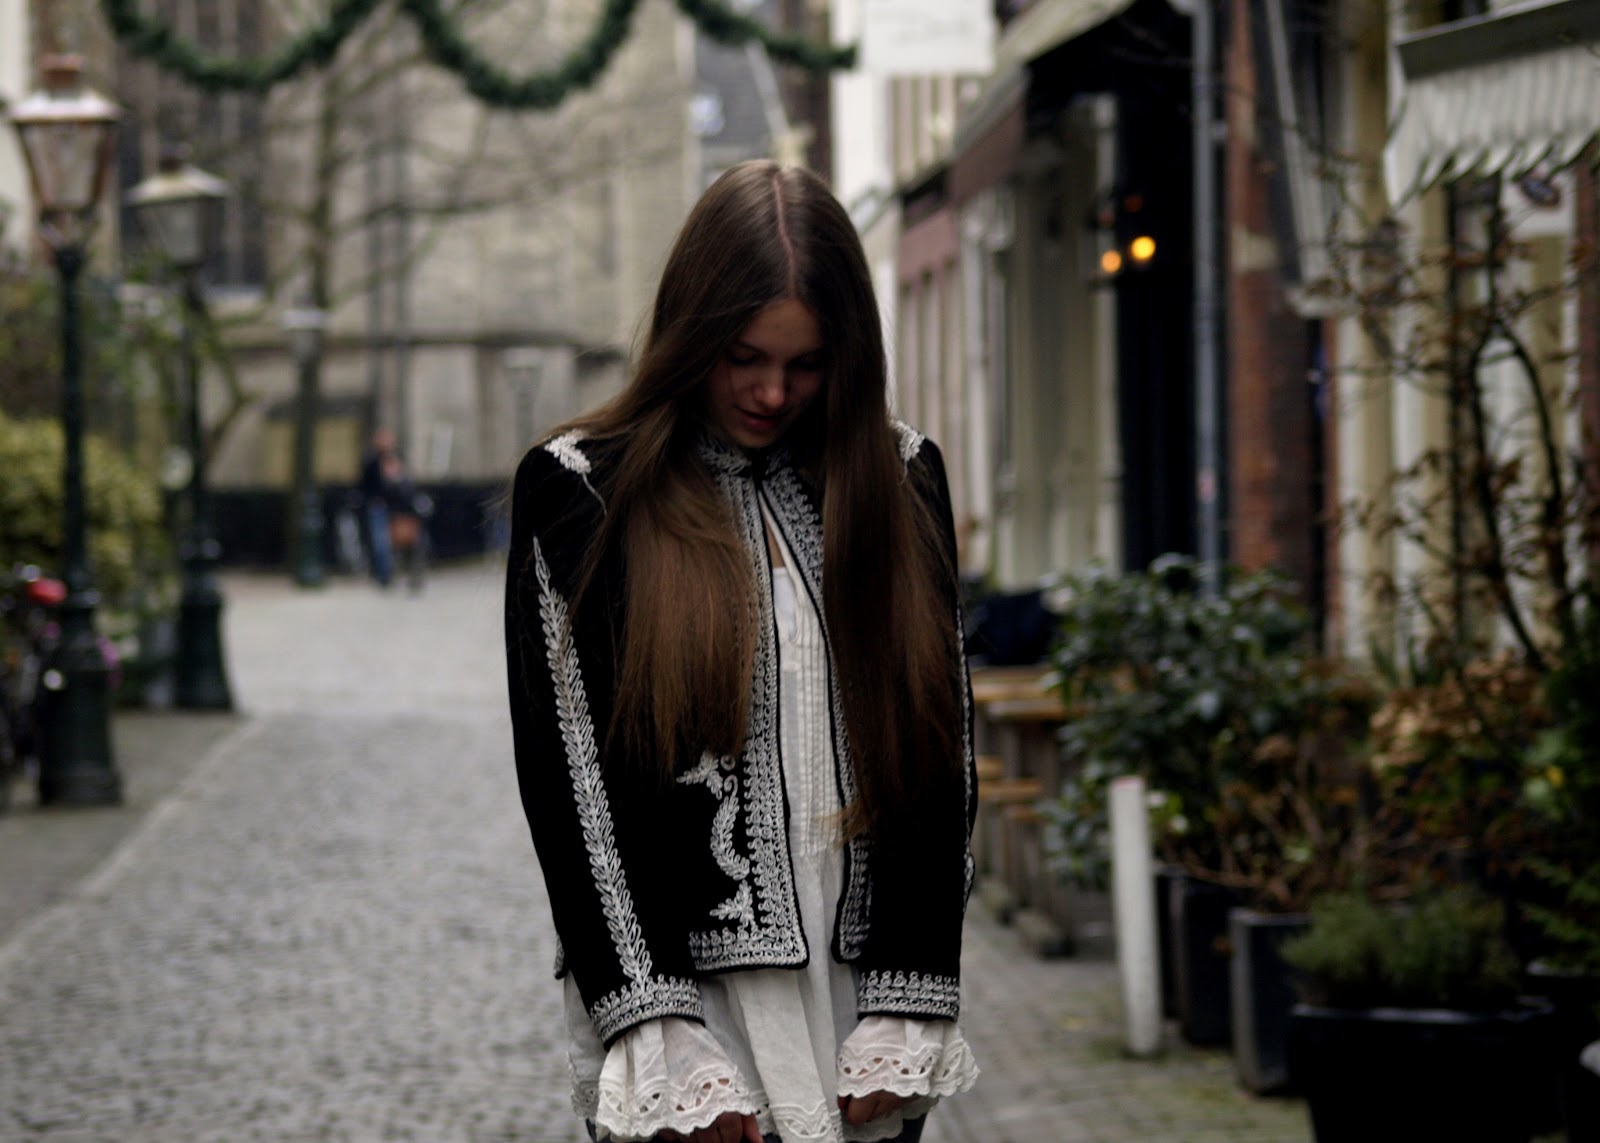 paris collection, h&m, blouse, fashion, detail, mode, cold weather, frozen